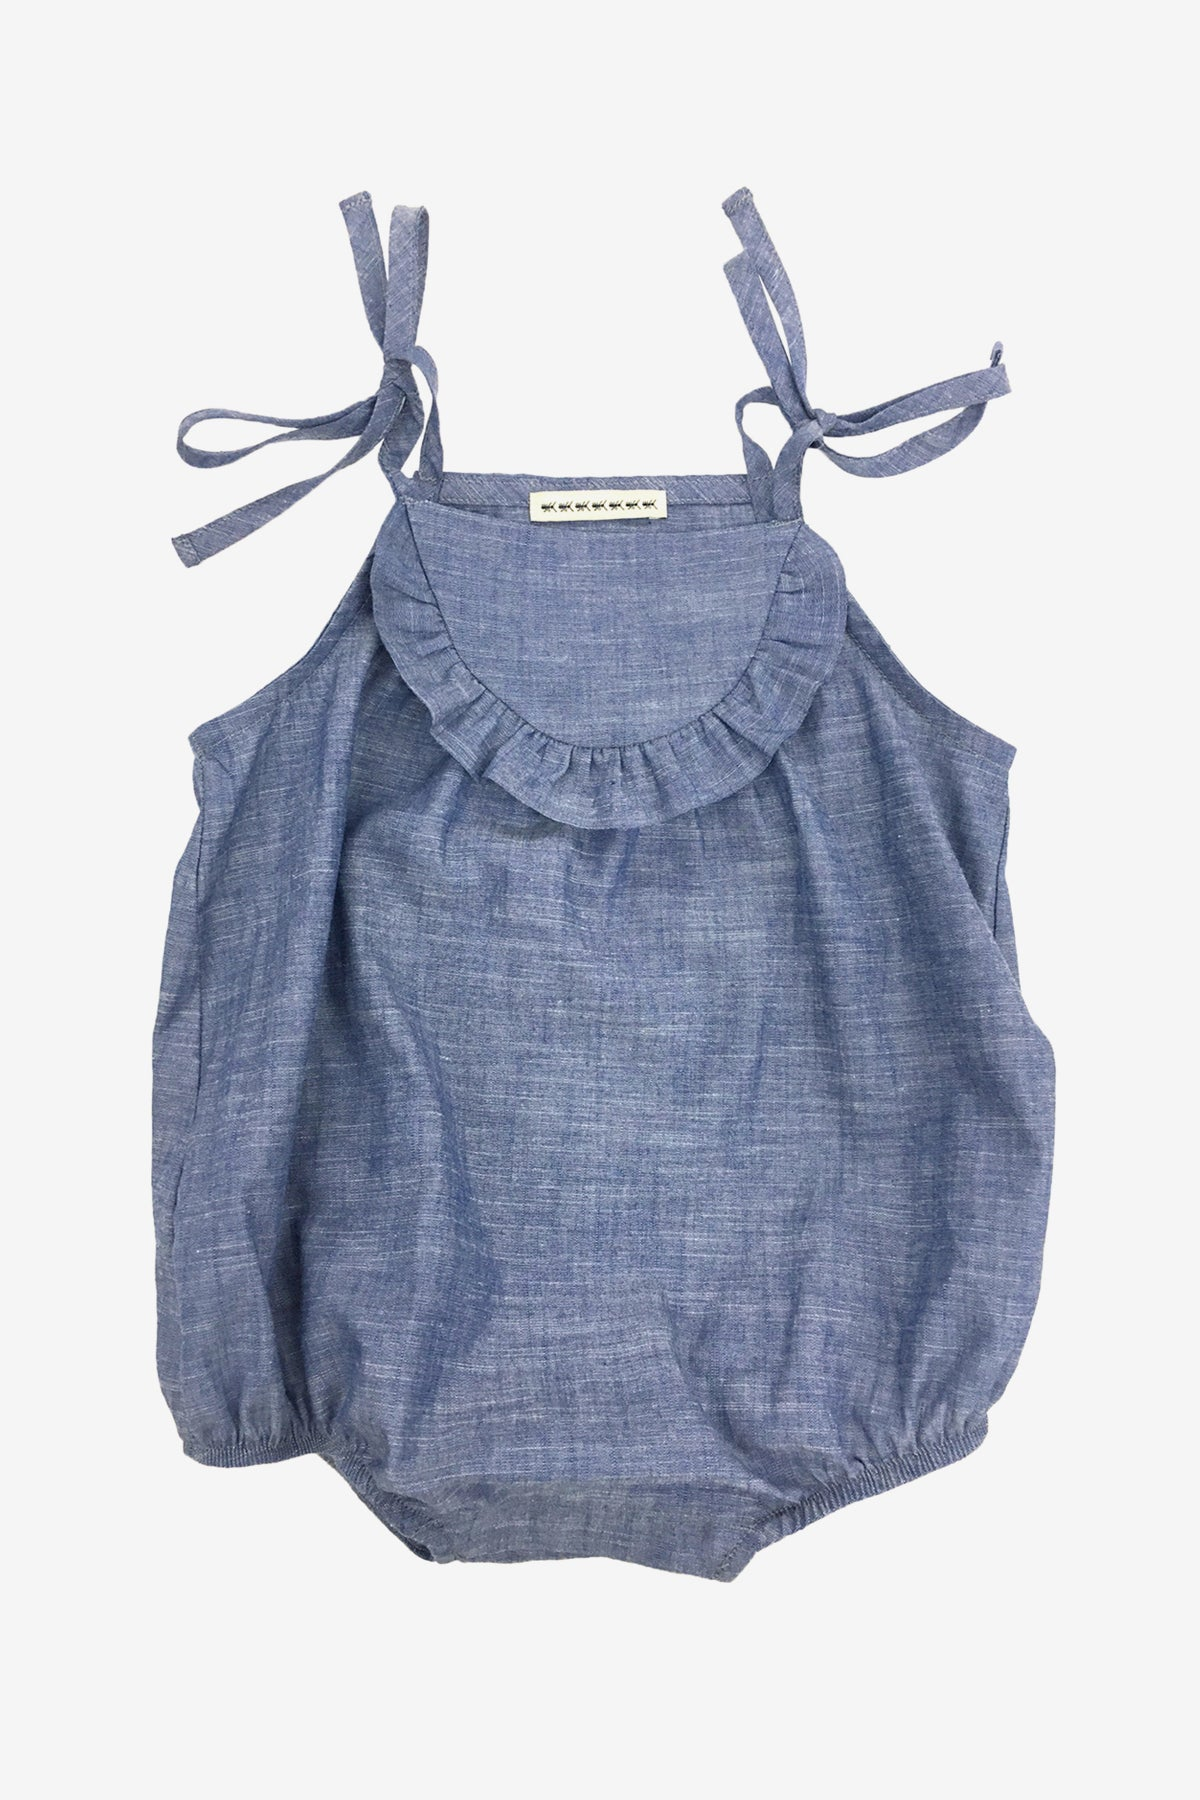 acfb942b9d48 Anthem of the Ants Baby Bubble Playsuit - Chambray (Size 6M left)